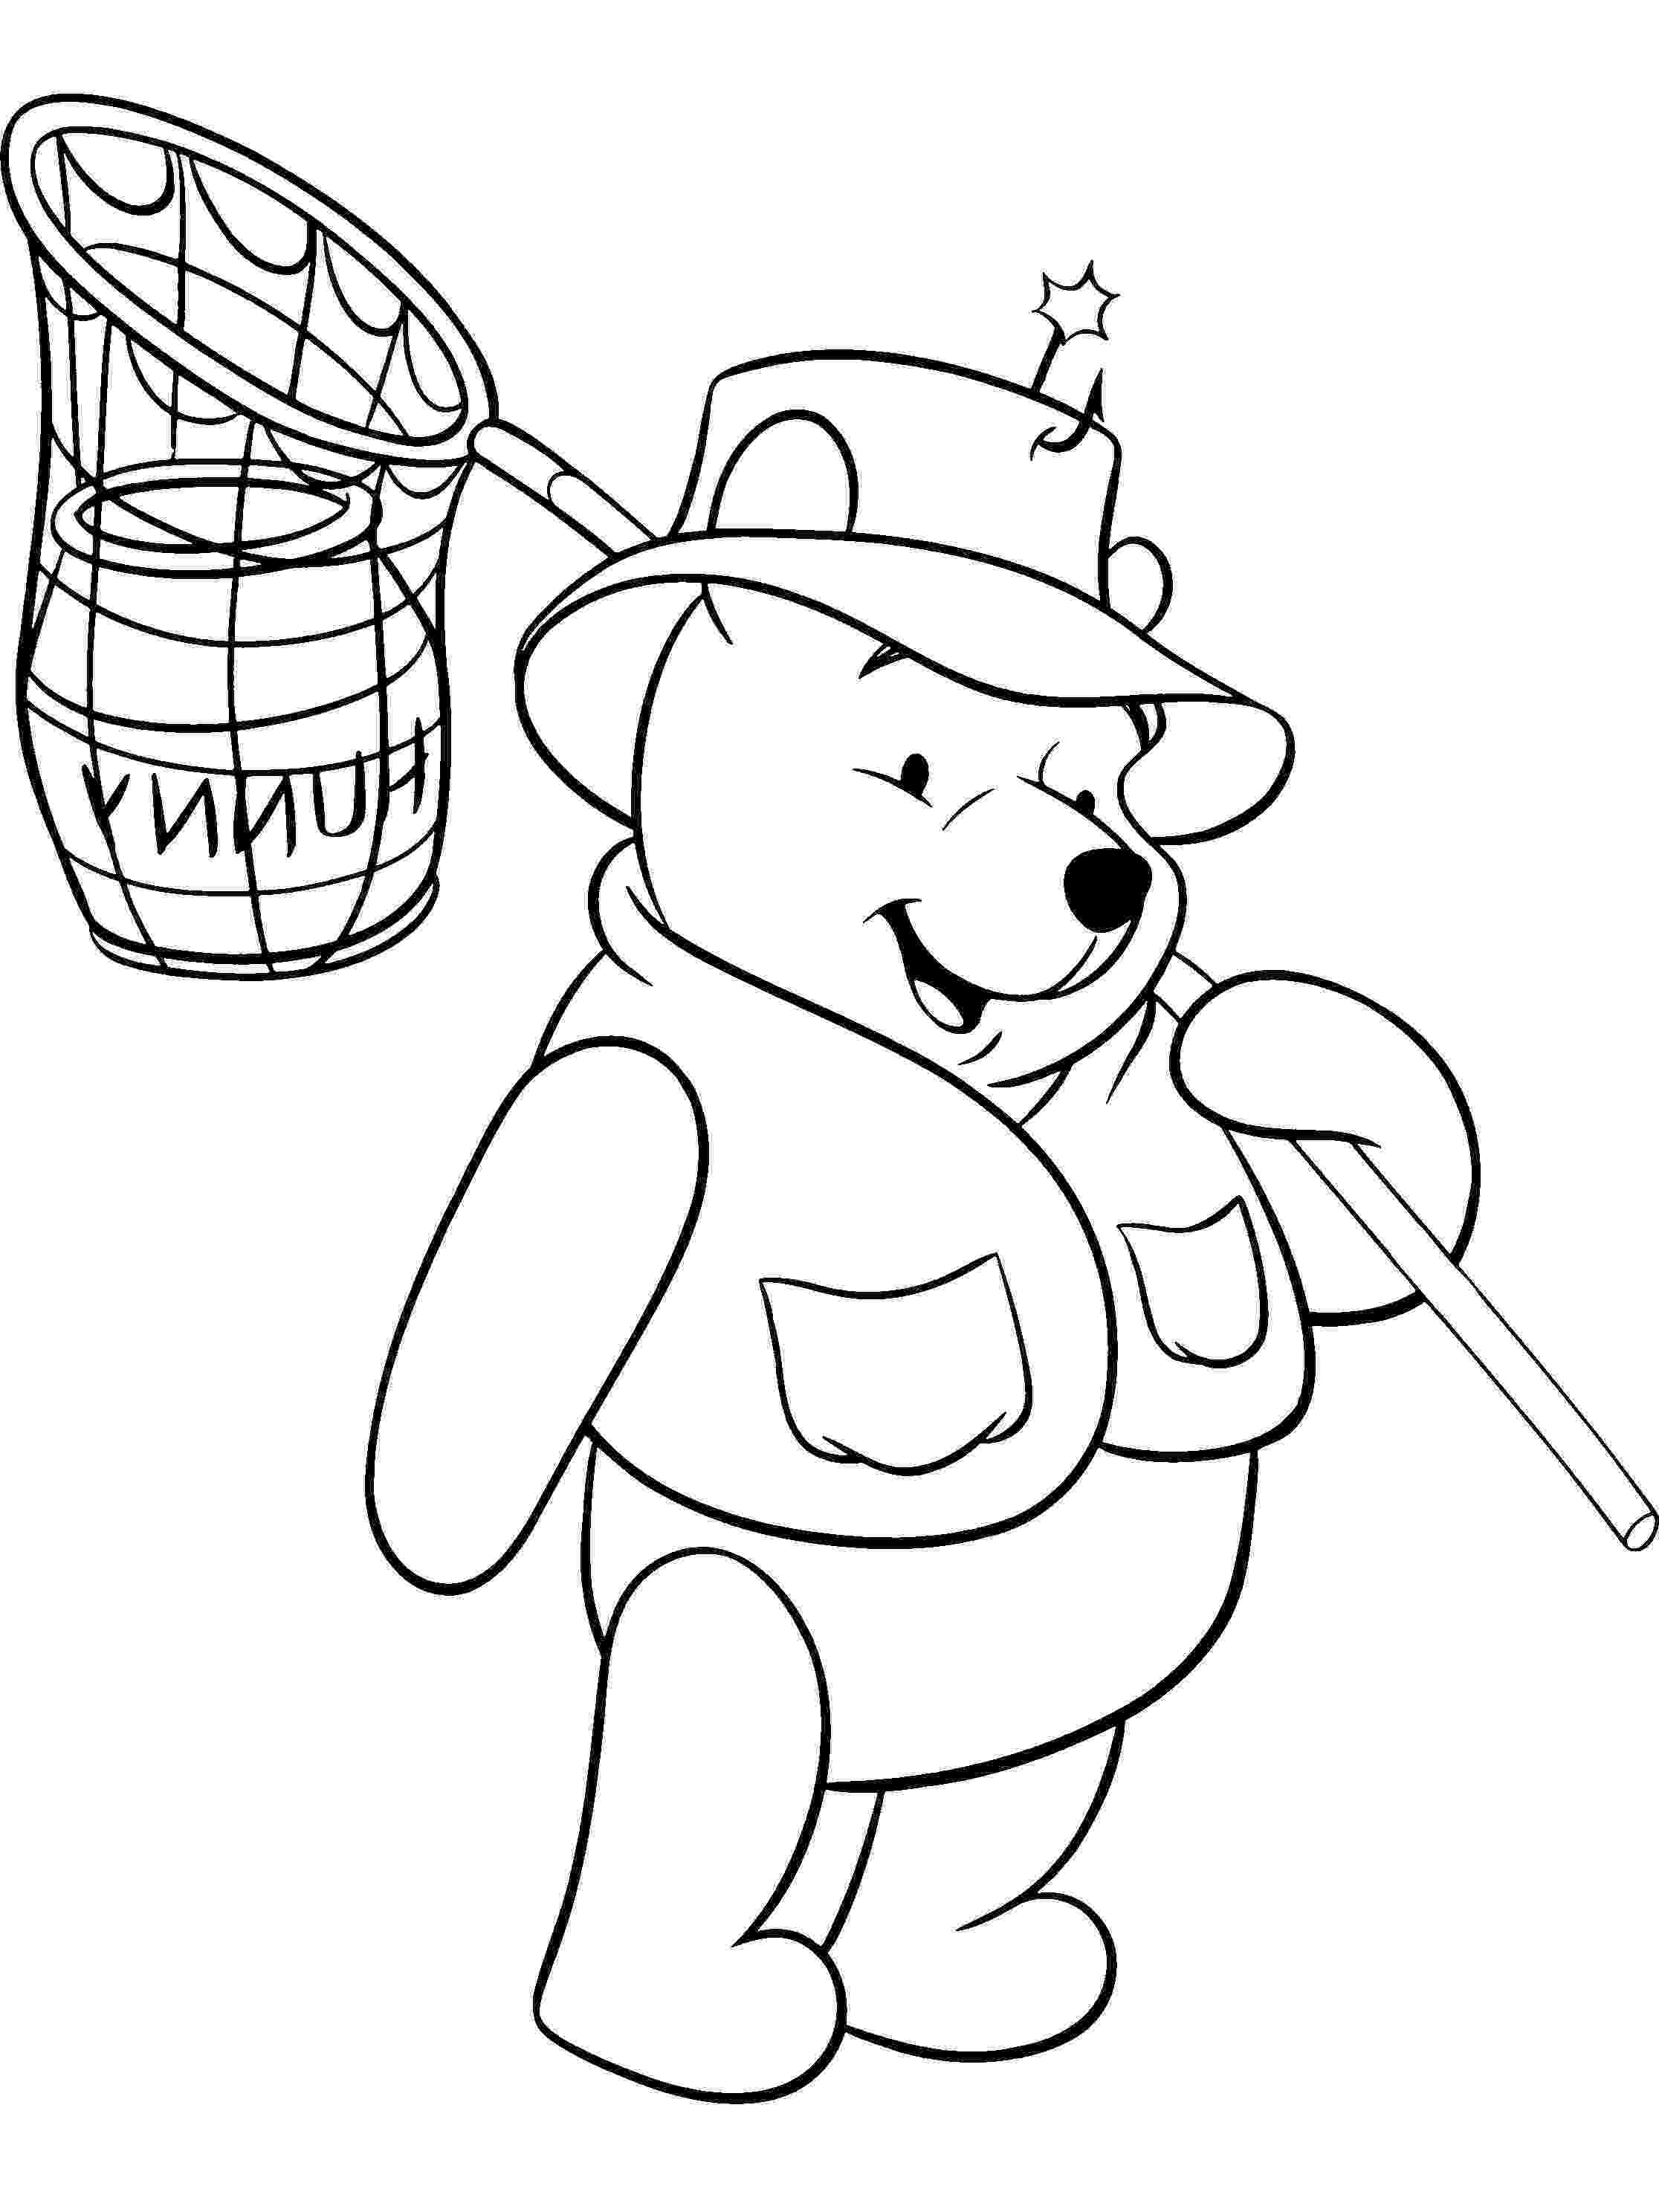 winnie the pooh printable coloring pages เรยนภาษาองกฤษ ความรภาษาองกฤษ ทำอยางไรใหเกงองกฤษ winnie the pooh pages coloring printable